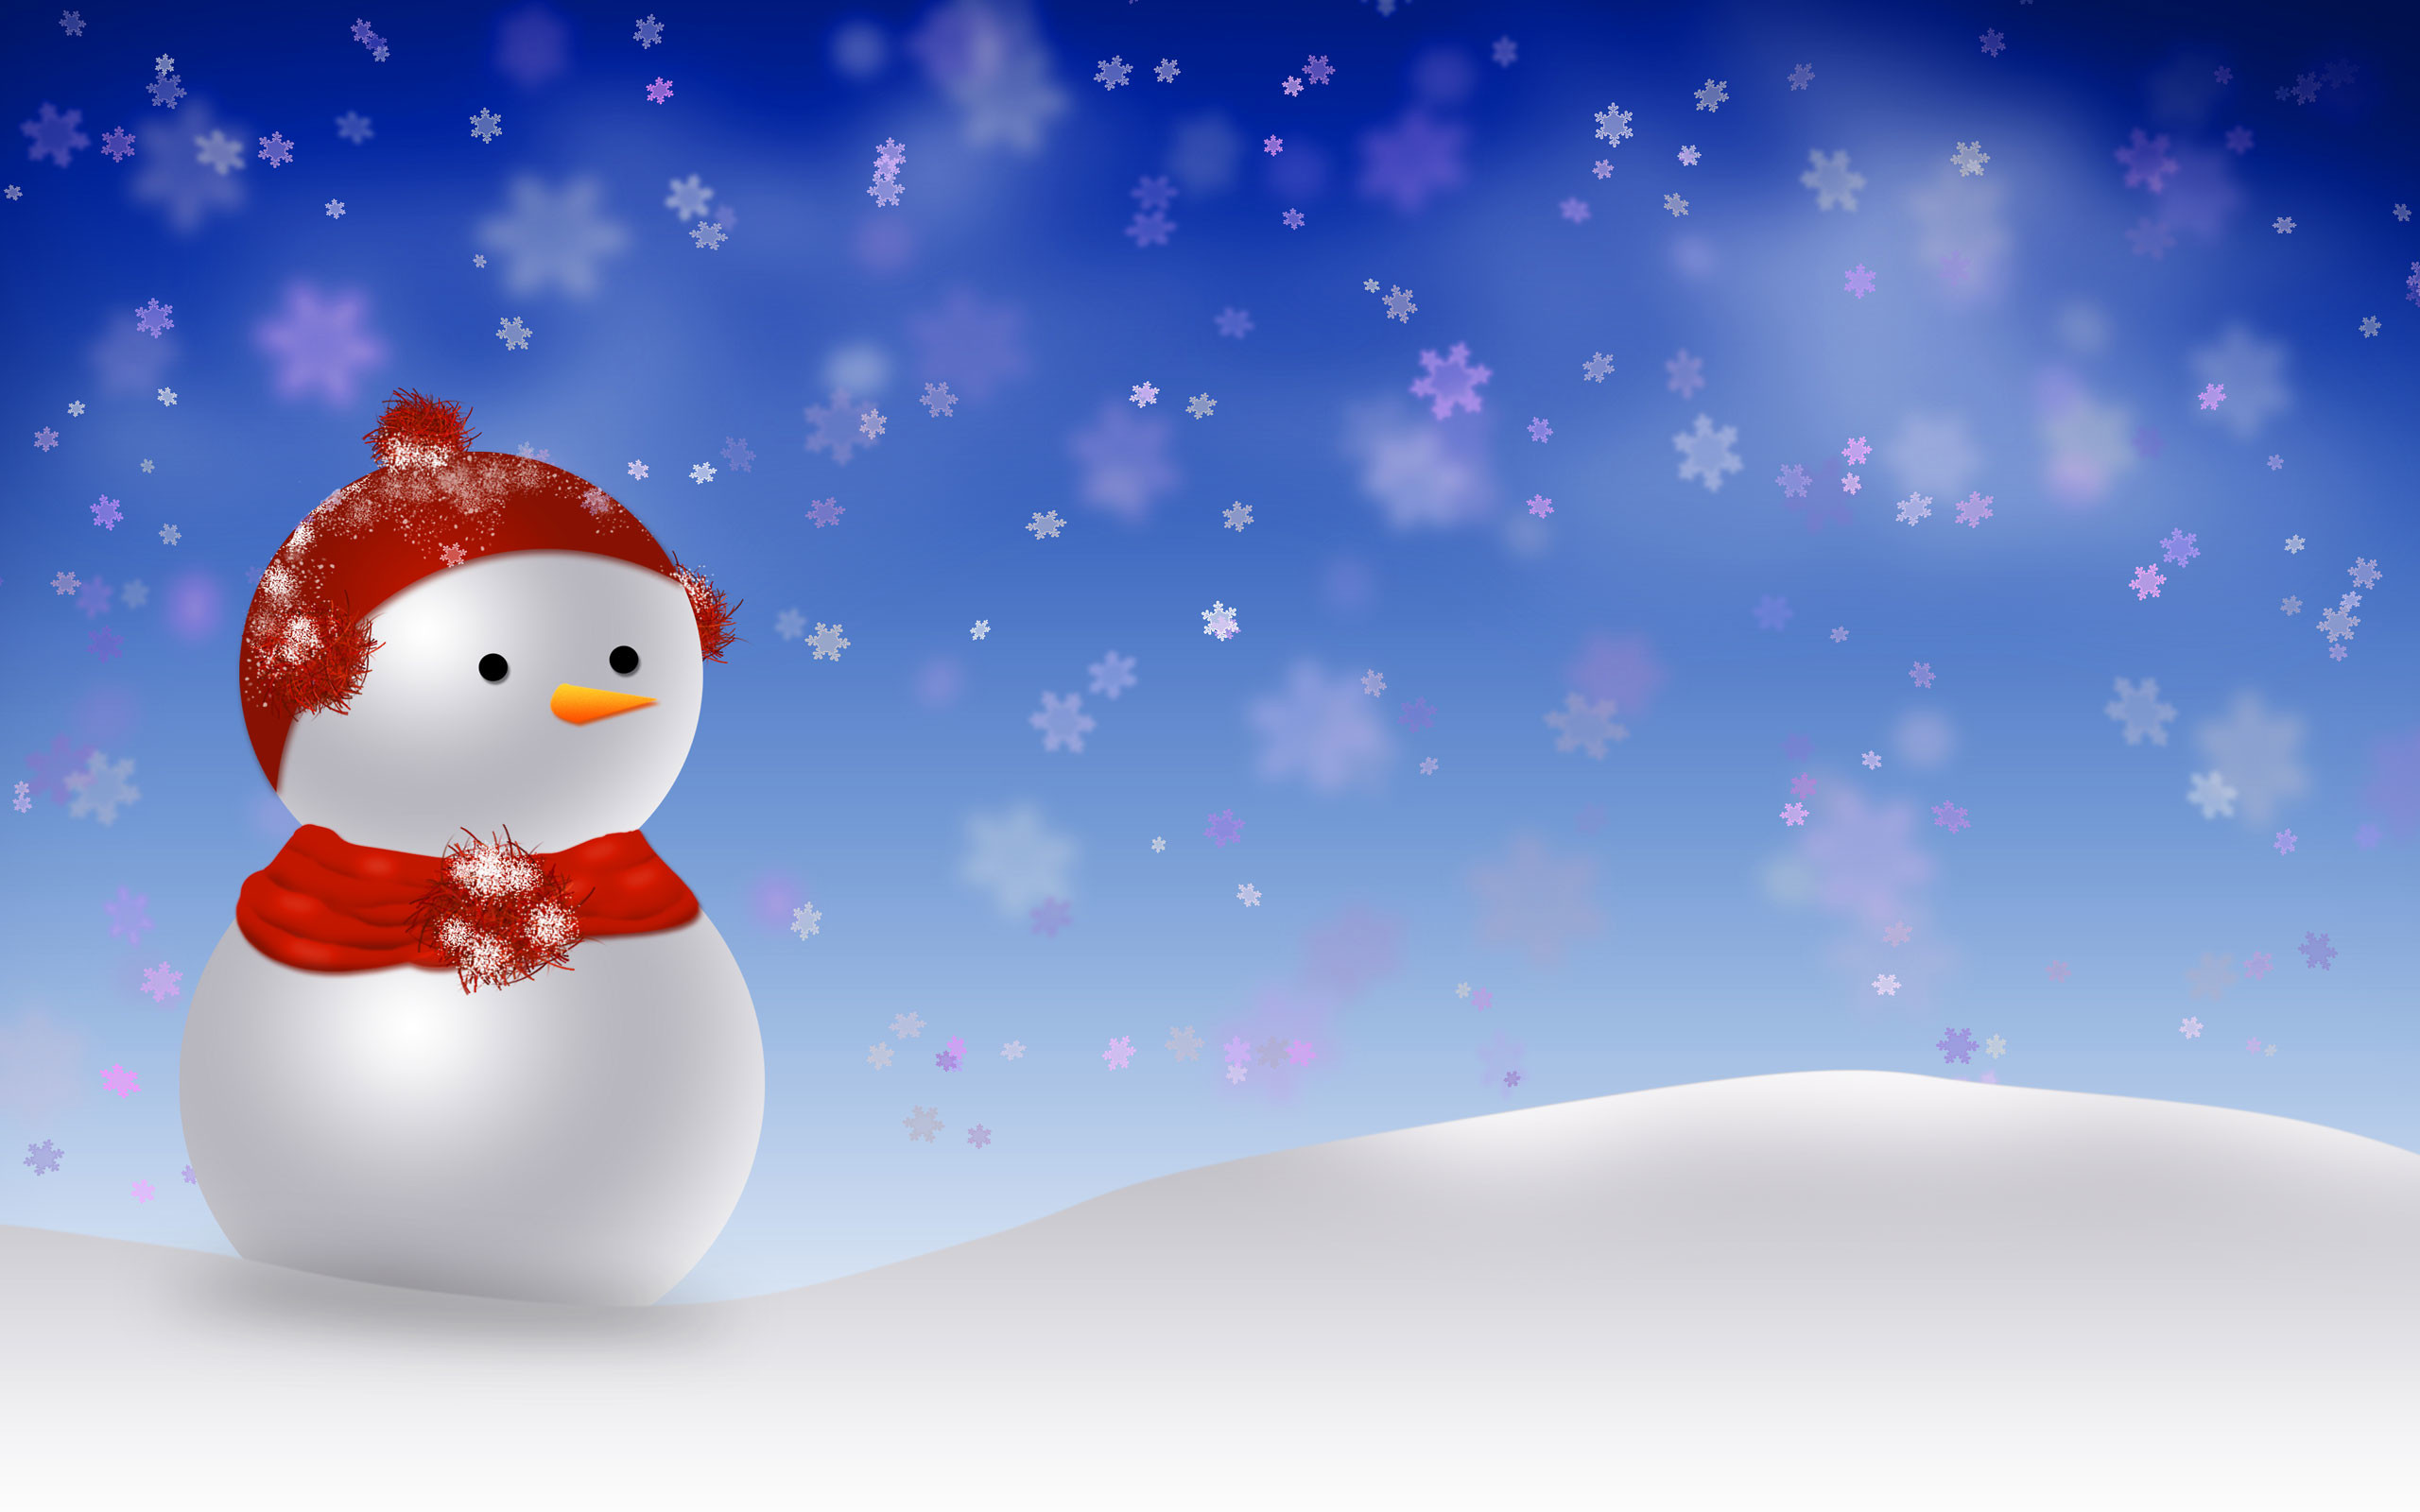 Christmas Wallpaper Moving Snow Falling 72 Images